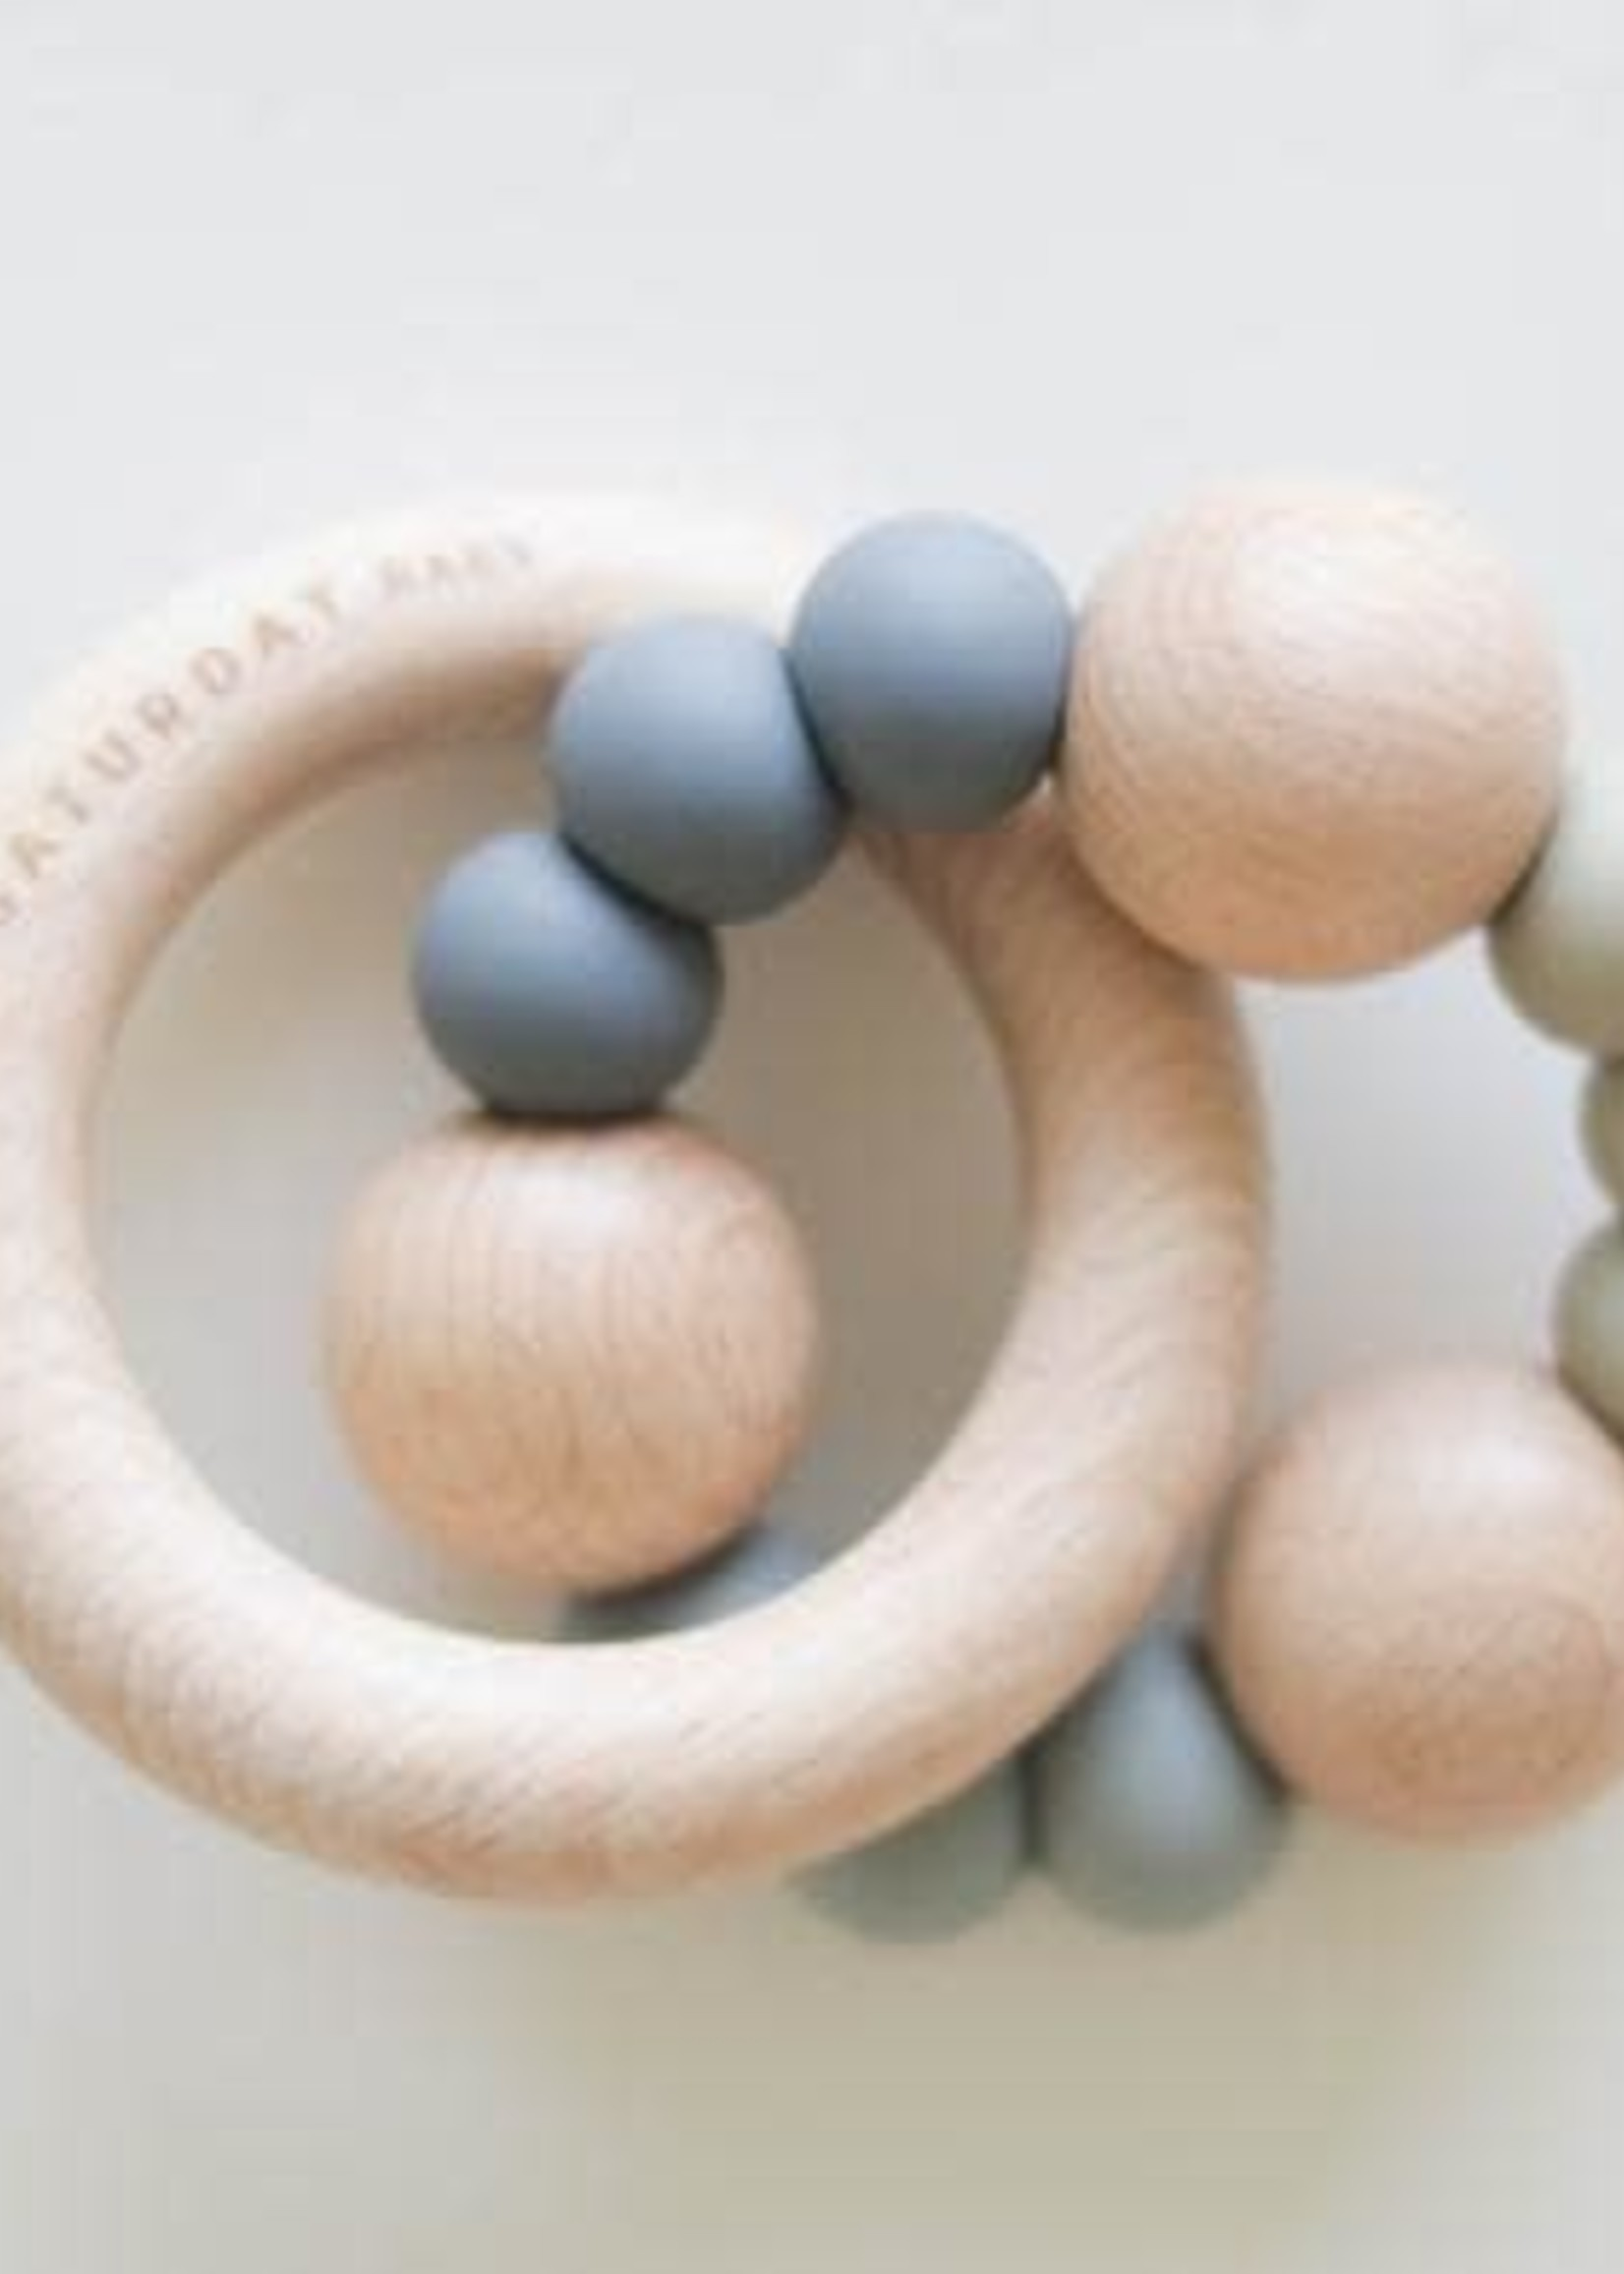 The SATURDAY Baby BABY Teethers